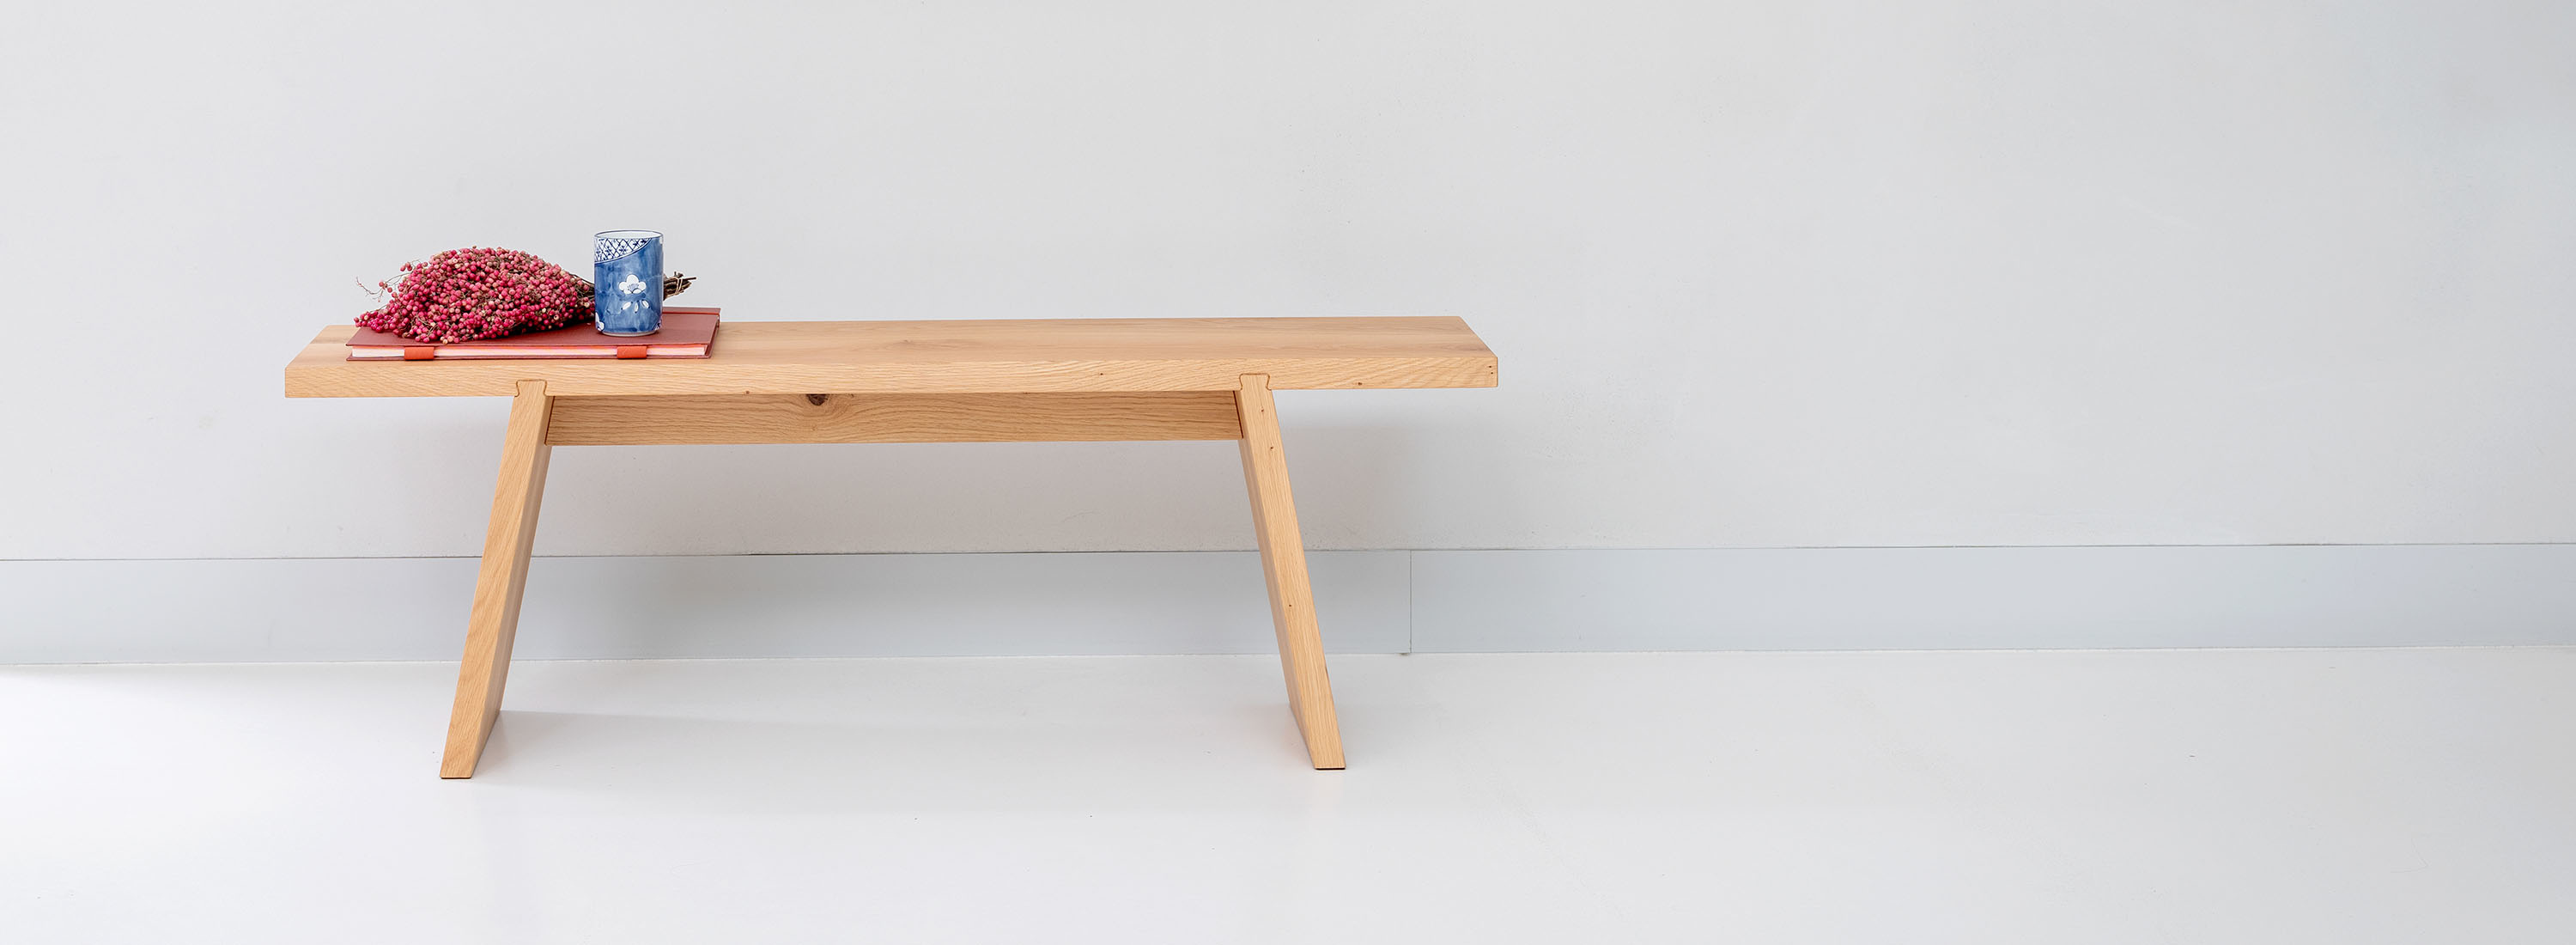 DOVETAIL BENCH